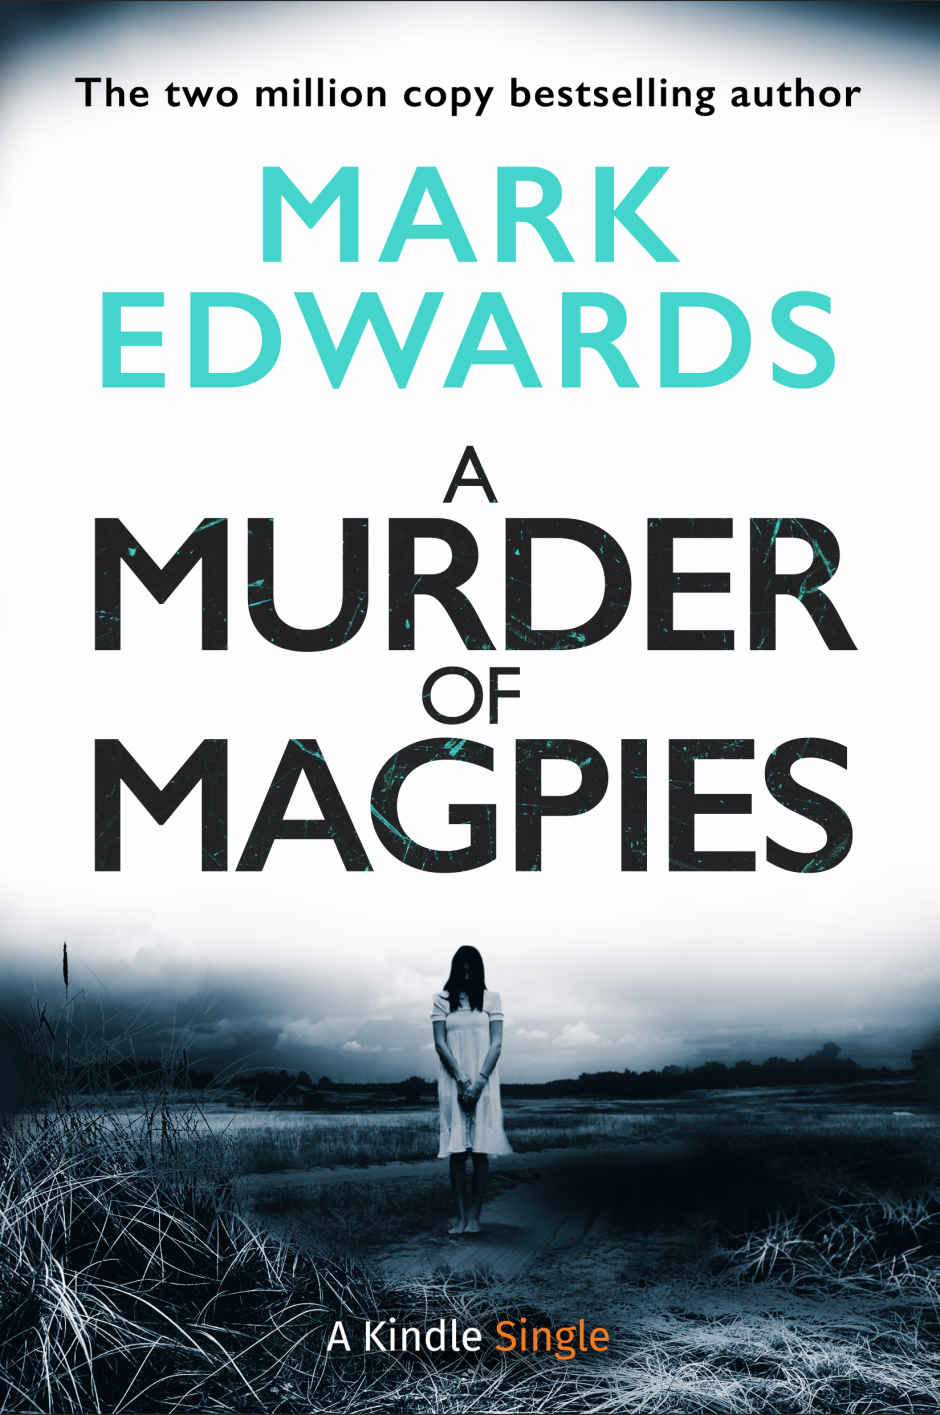 A Murder of Magpies by Mark Edwards [ePub] - Epub Cafe